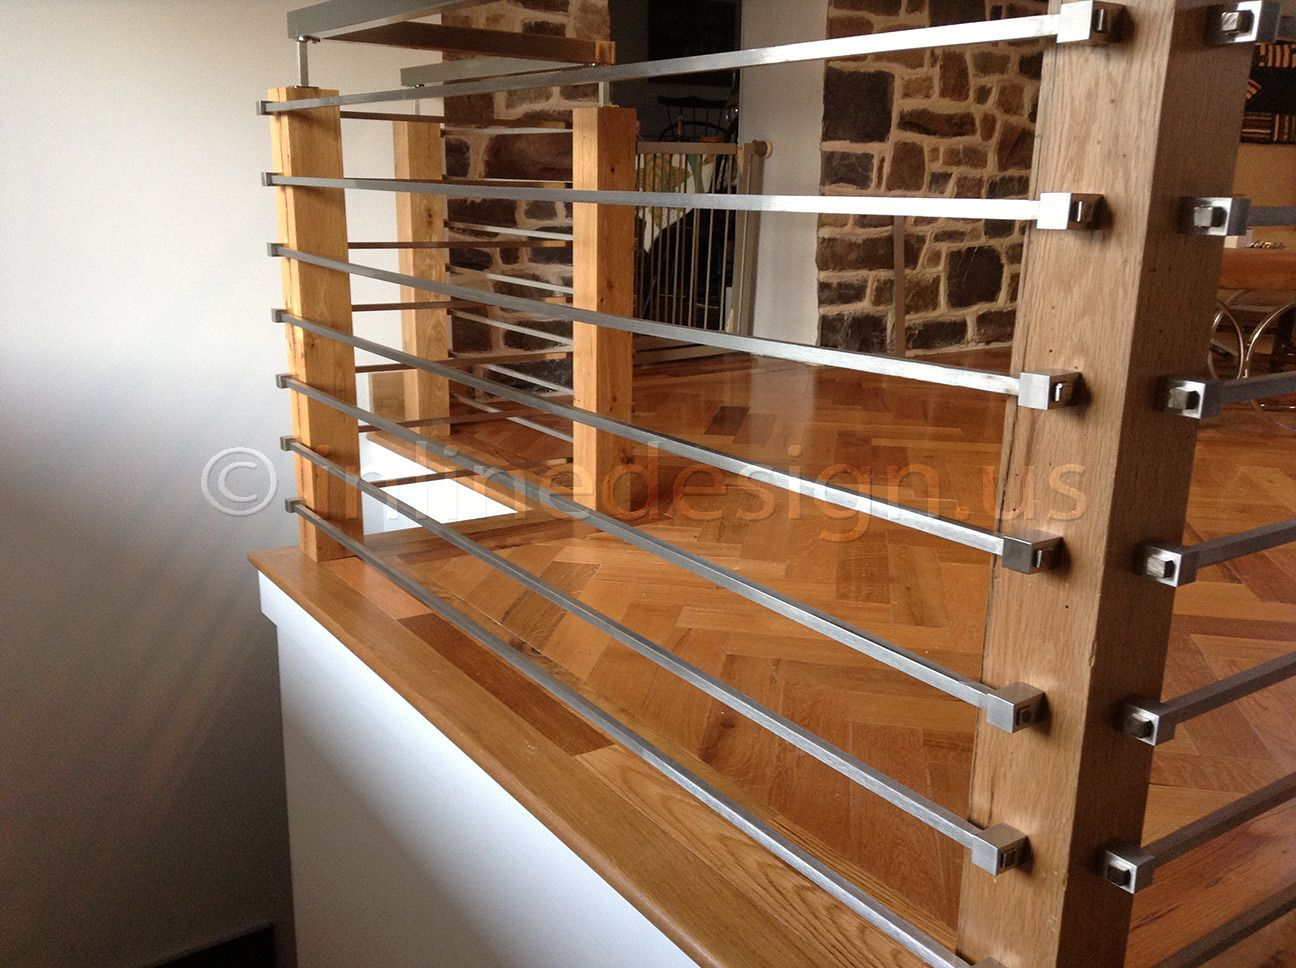 Stainless Steel Stair Railing Kits. Stunning Contempo